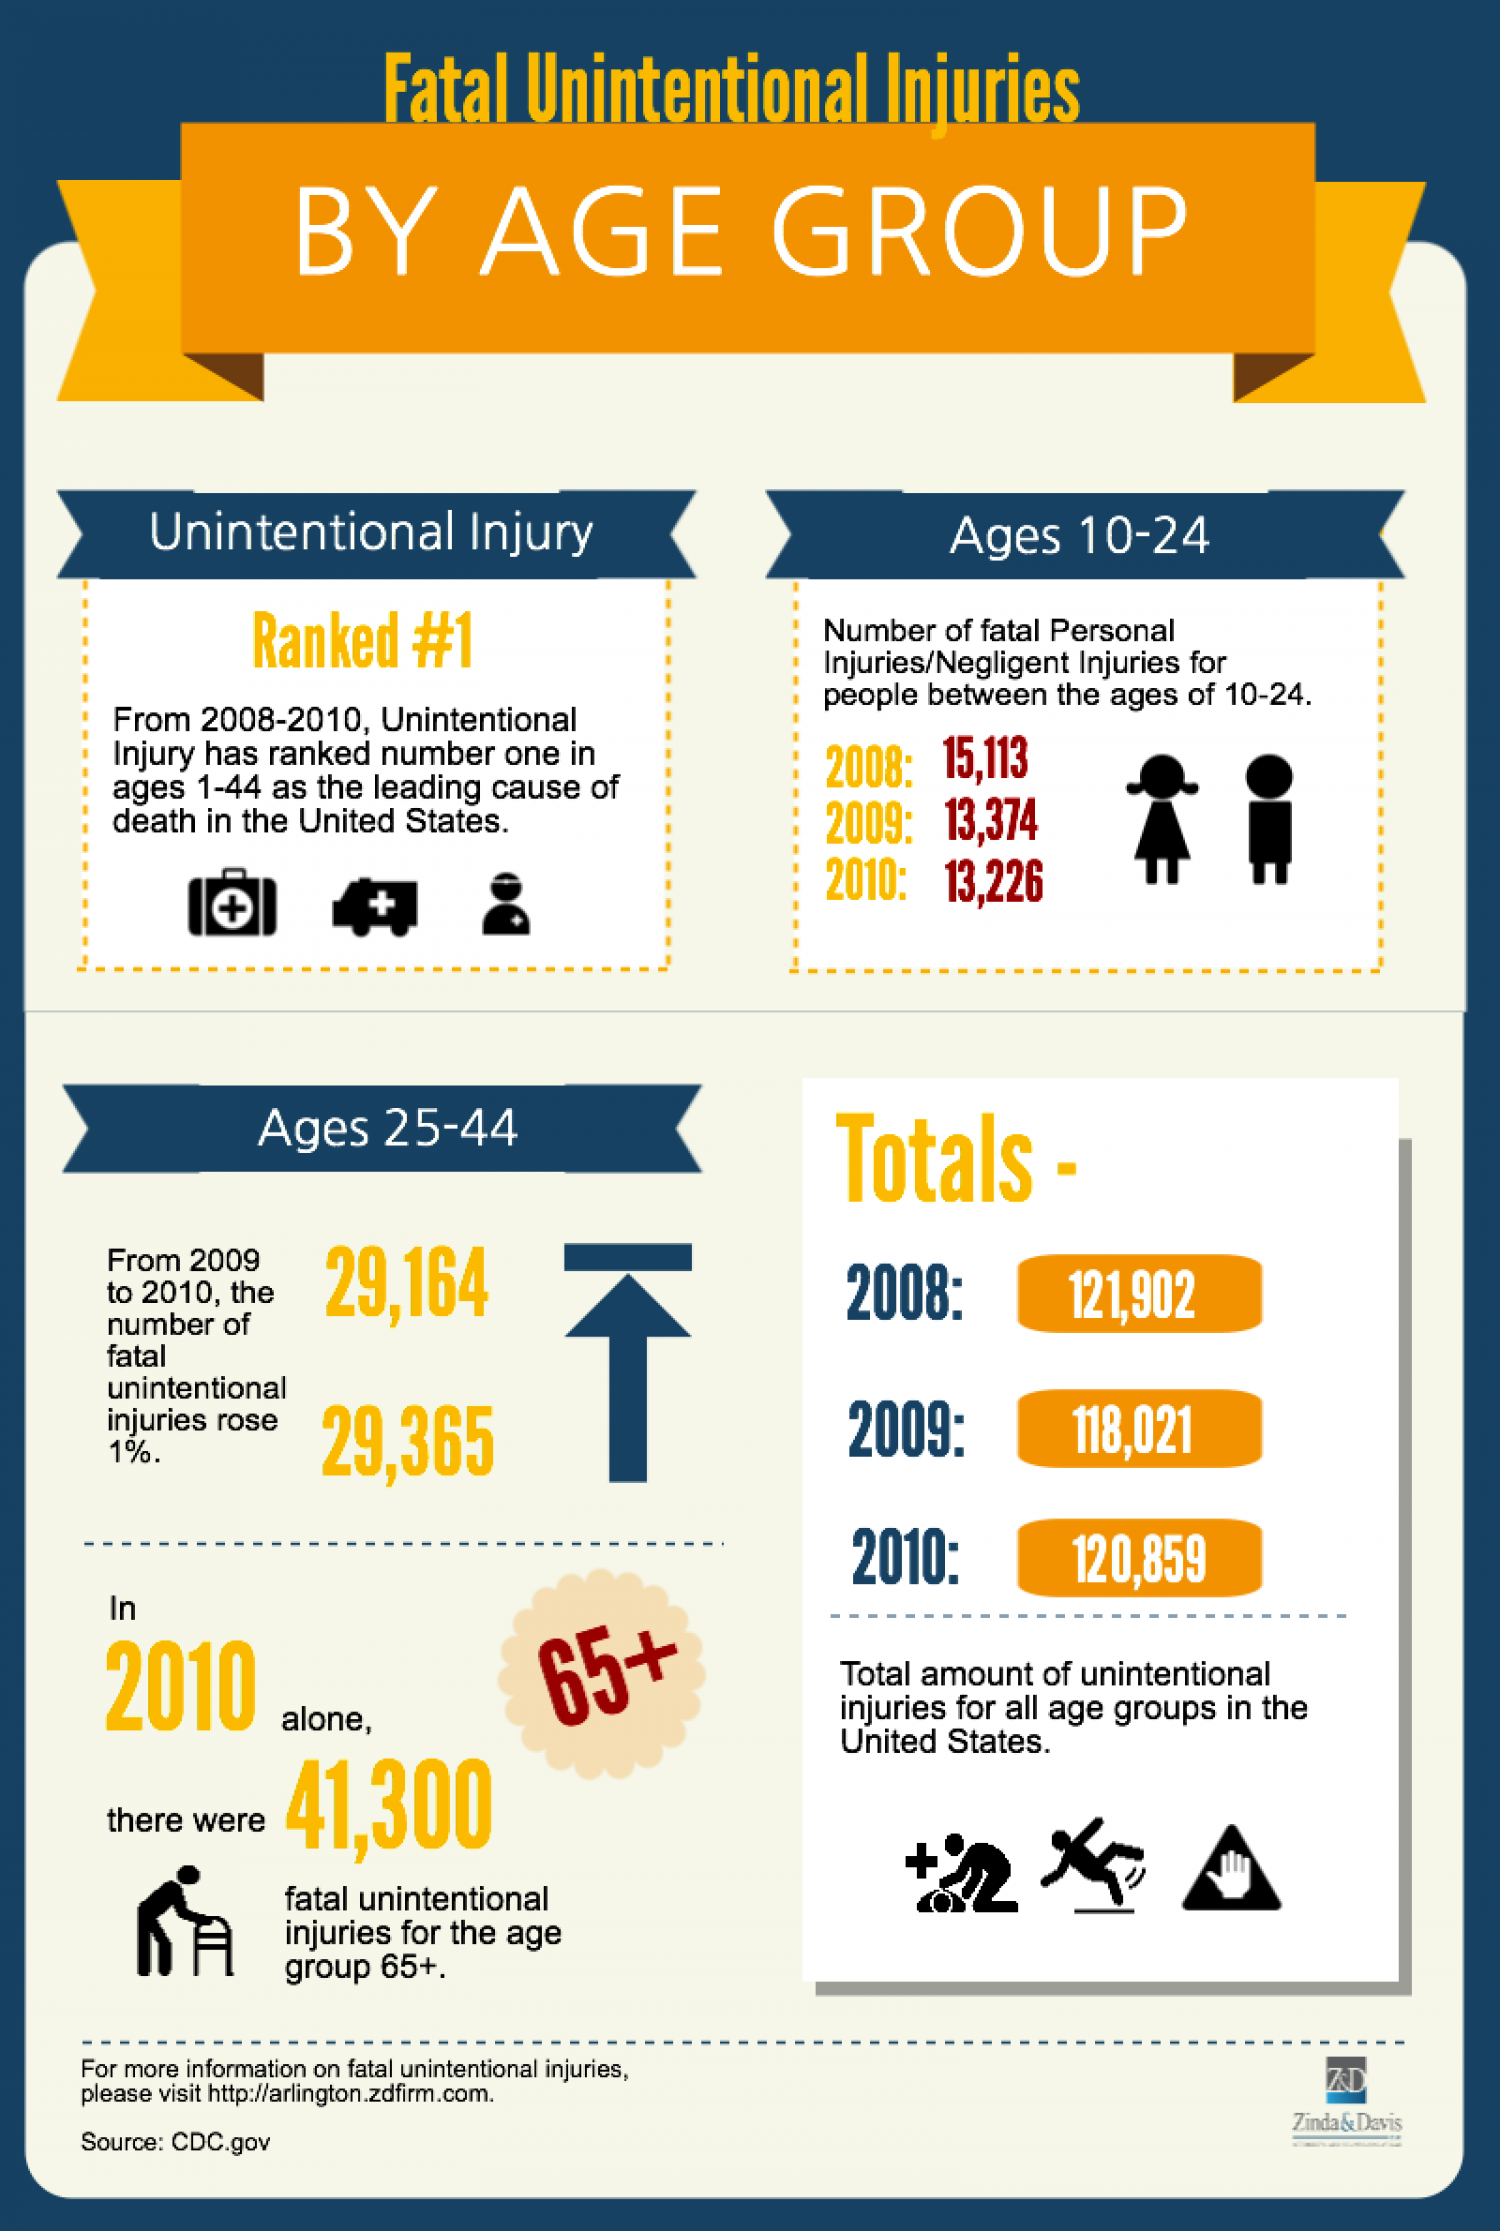 Fatal Unintentional Injuries by Age Group Infographic